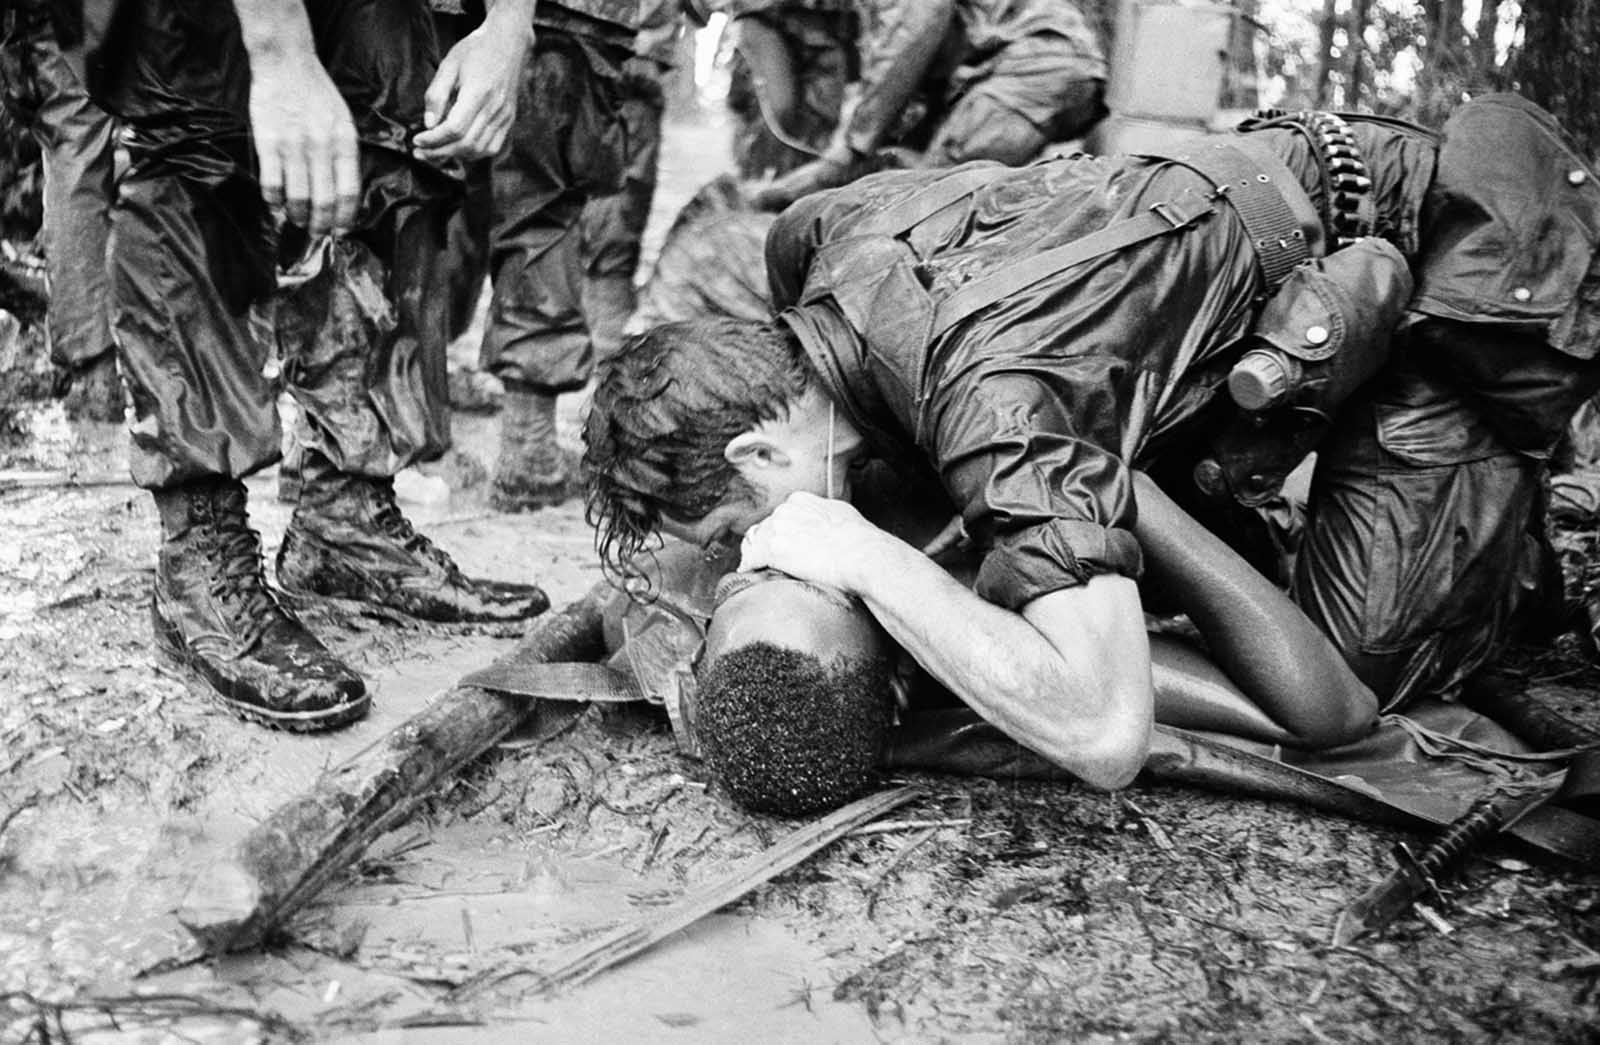 A trooper of the 101st Airborne Division attempts to save the life of a buddy at Dong Ap Bia Mountain, near South Vietnam's A Shau Valley on May 19, 1969. The man was seriously wounded in the last of repeated attempts by U.S. forces to capture enemy positions there.